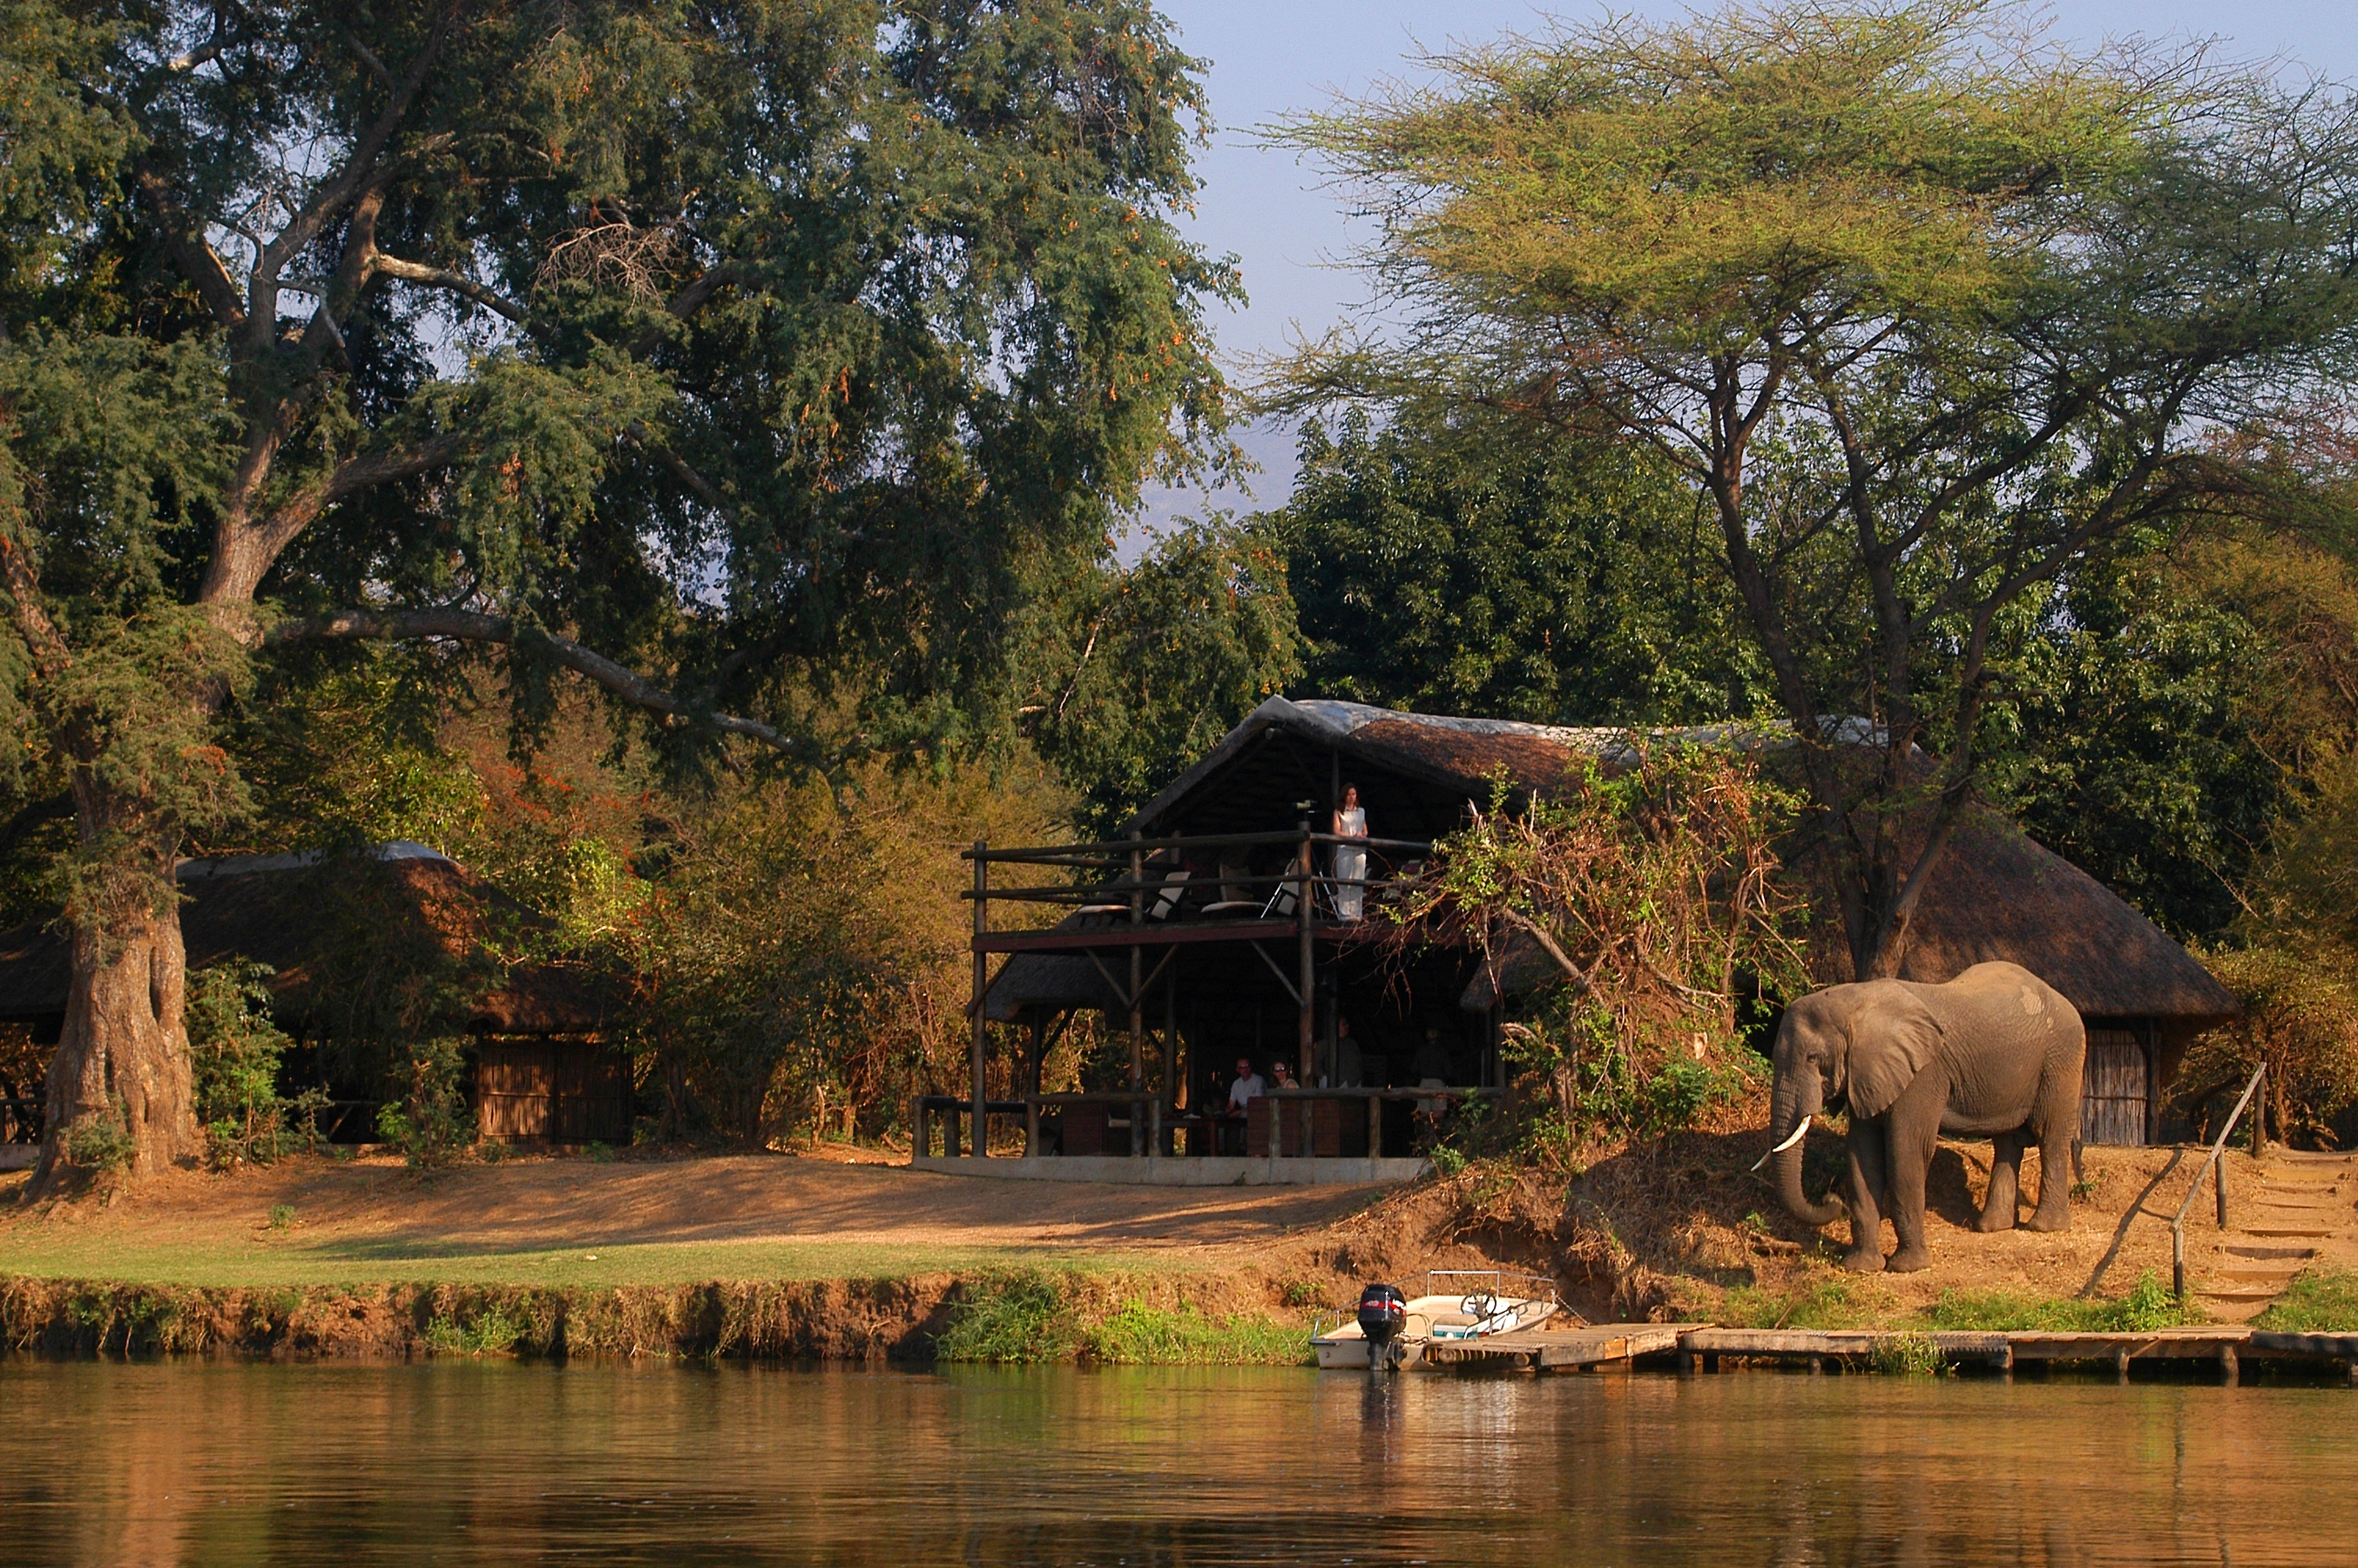 CHIAWA CAMP - Elephant close to the main guest area